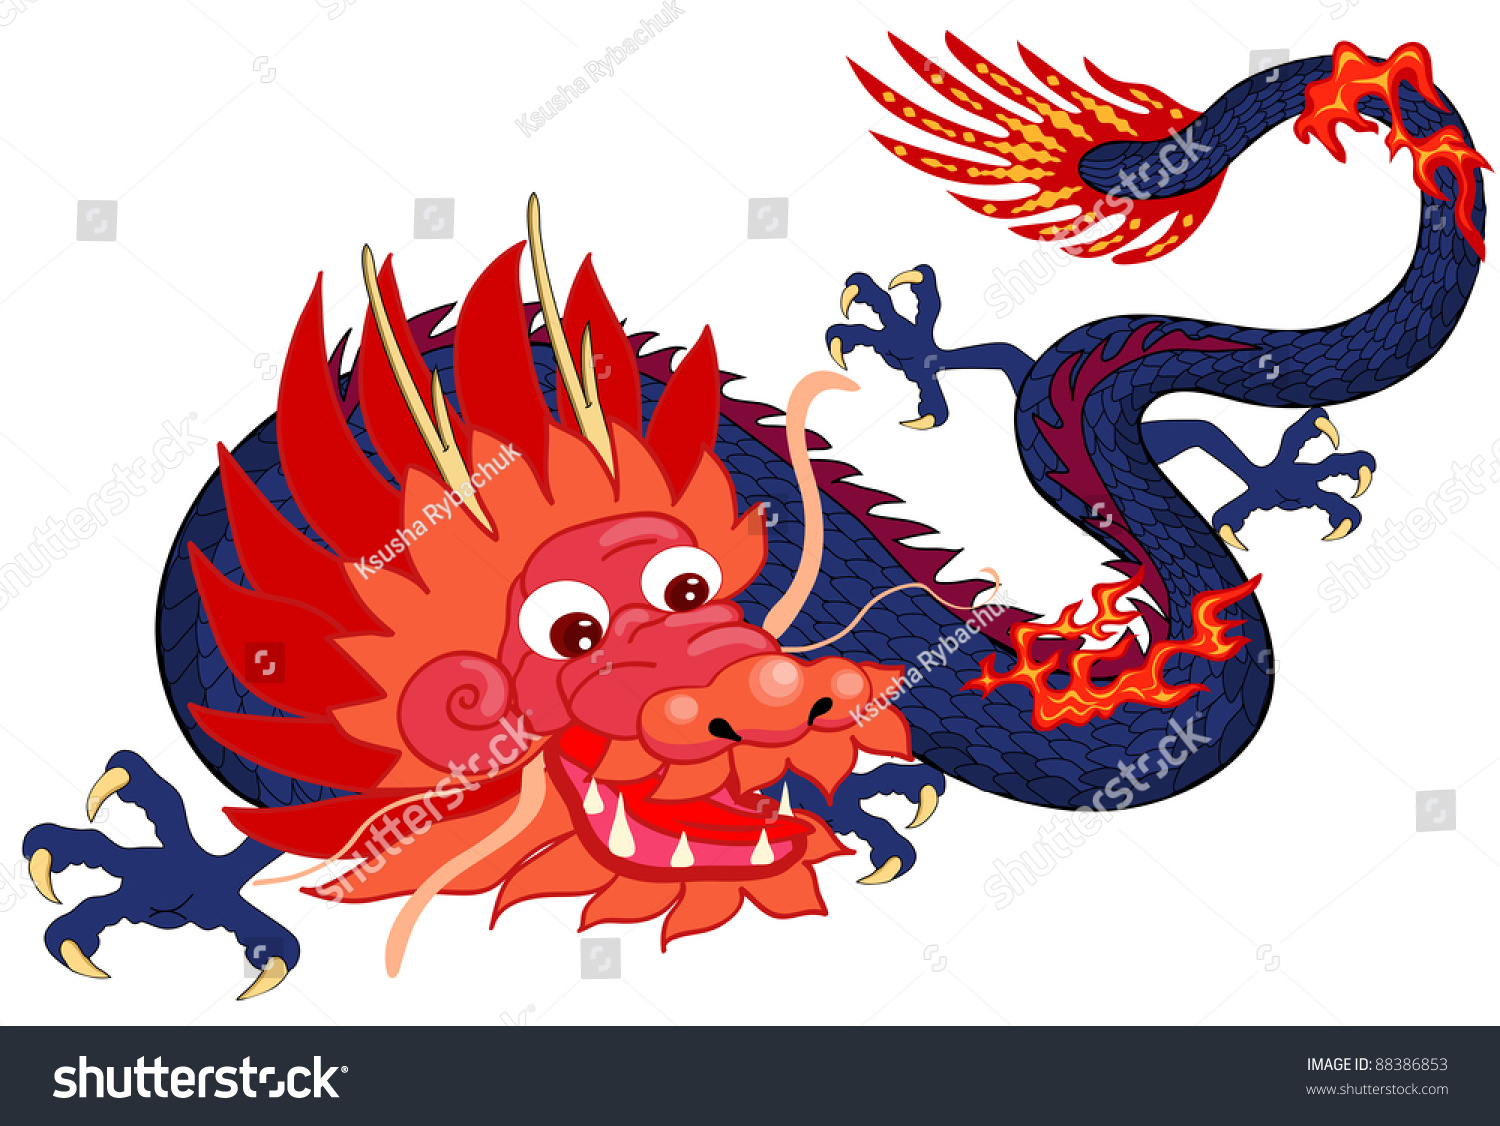 Chinese dragon symbol 2012 year cartoon stock vector 88386853 chinese dragon symbol of the 2012 year cartoon biocorpaavc